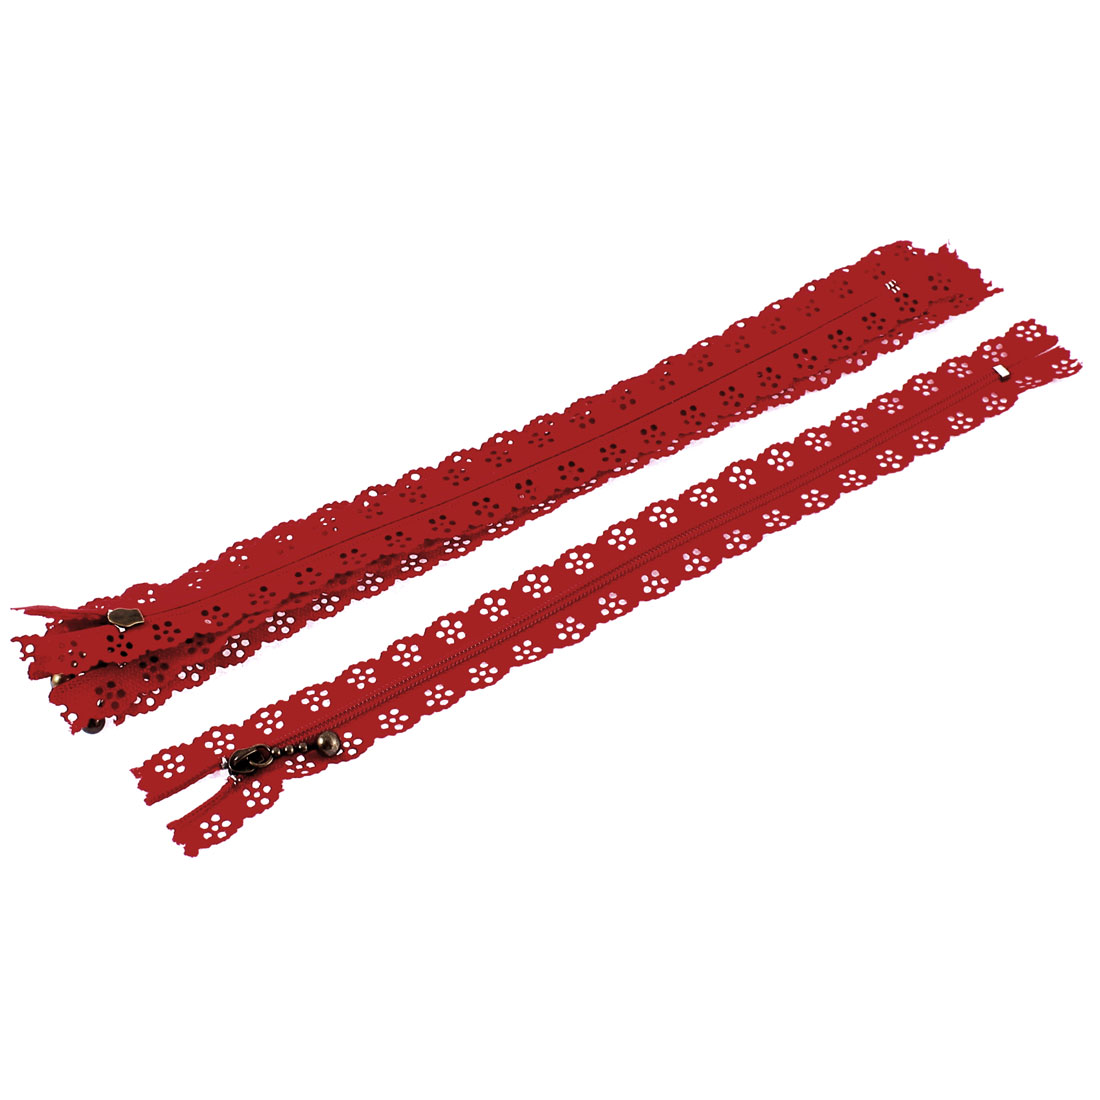 Red Nylon Flower Floral Lace Closed End Zip Zippers 5 Pcs